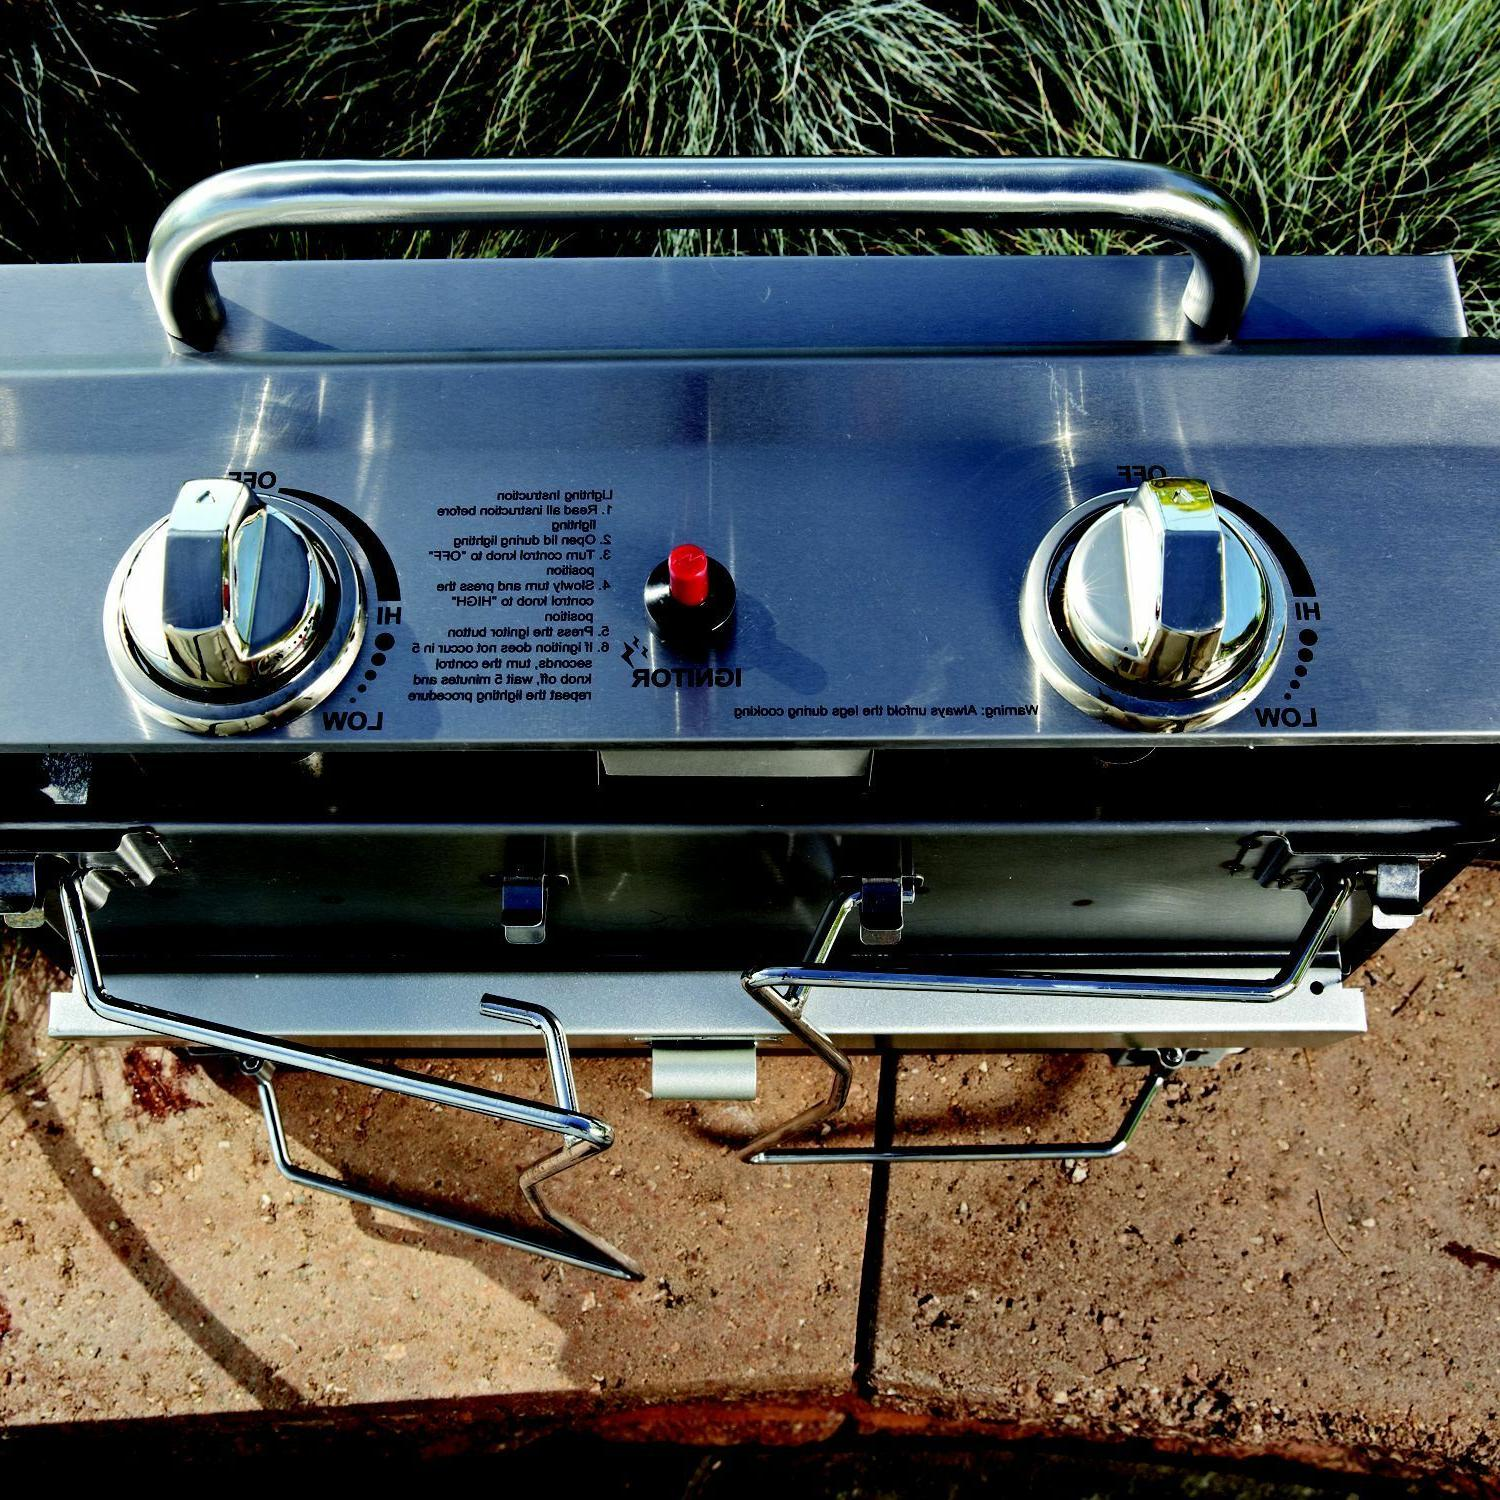 OUTDOOR 2 GRILL COVER